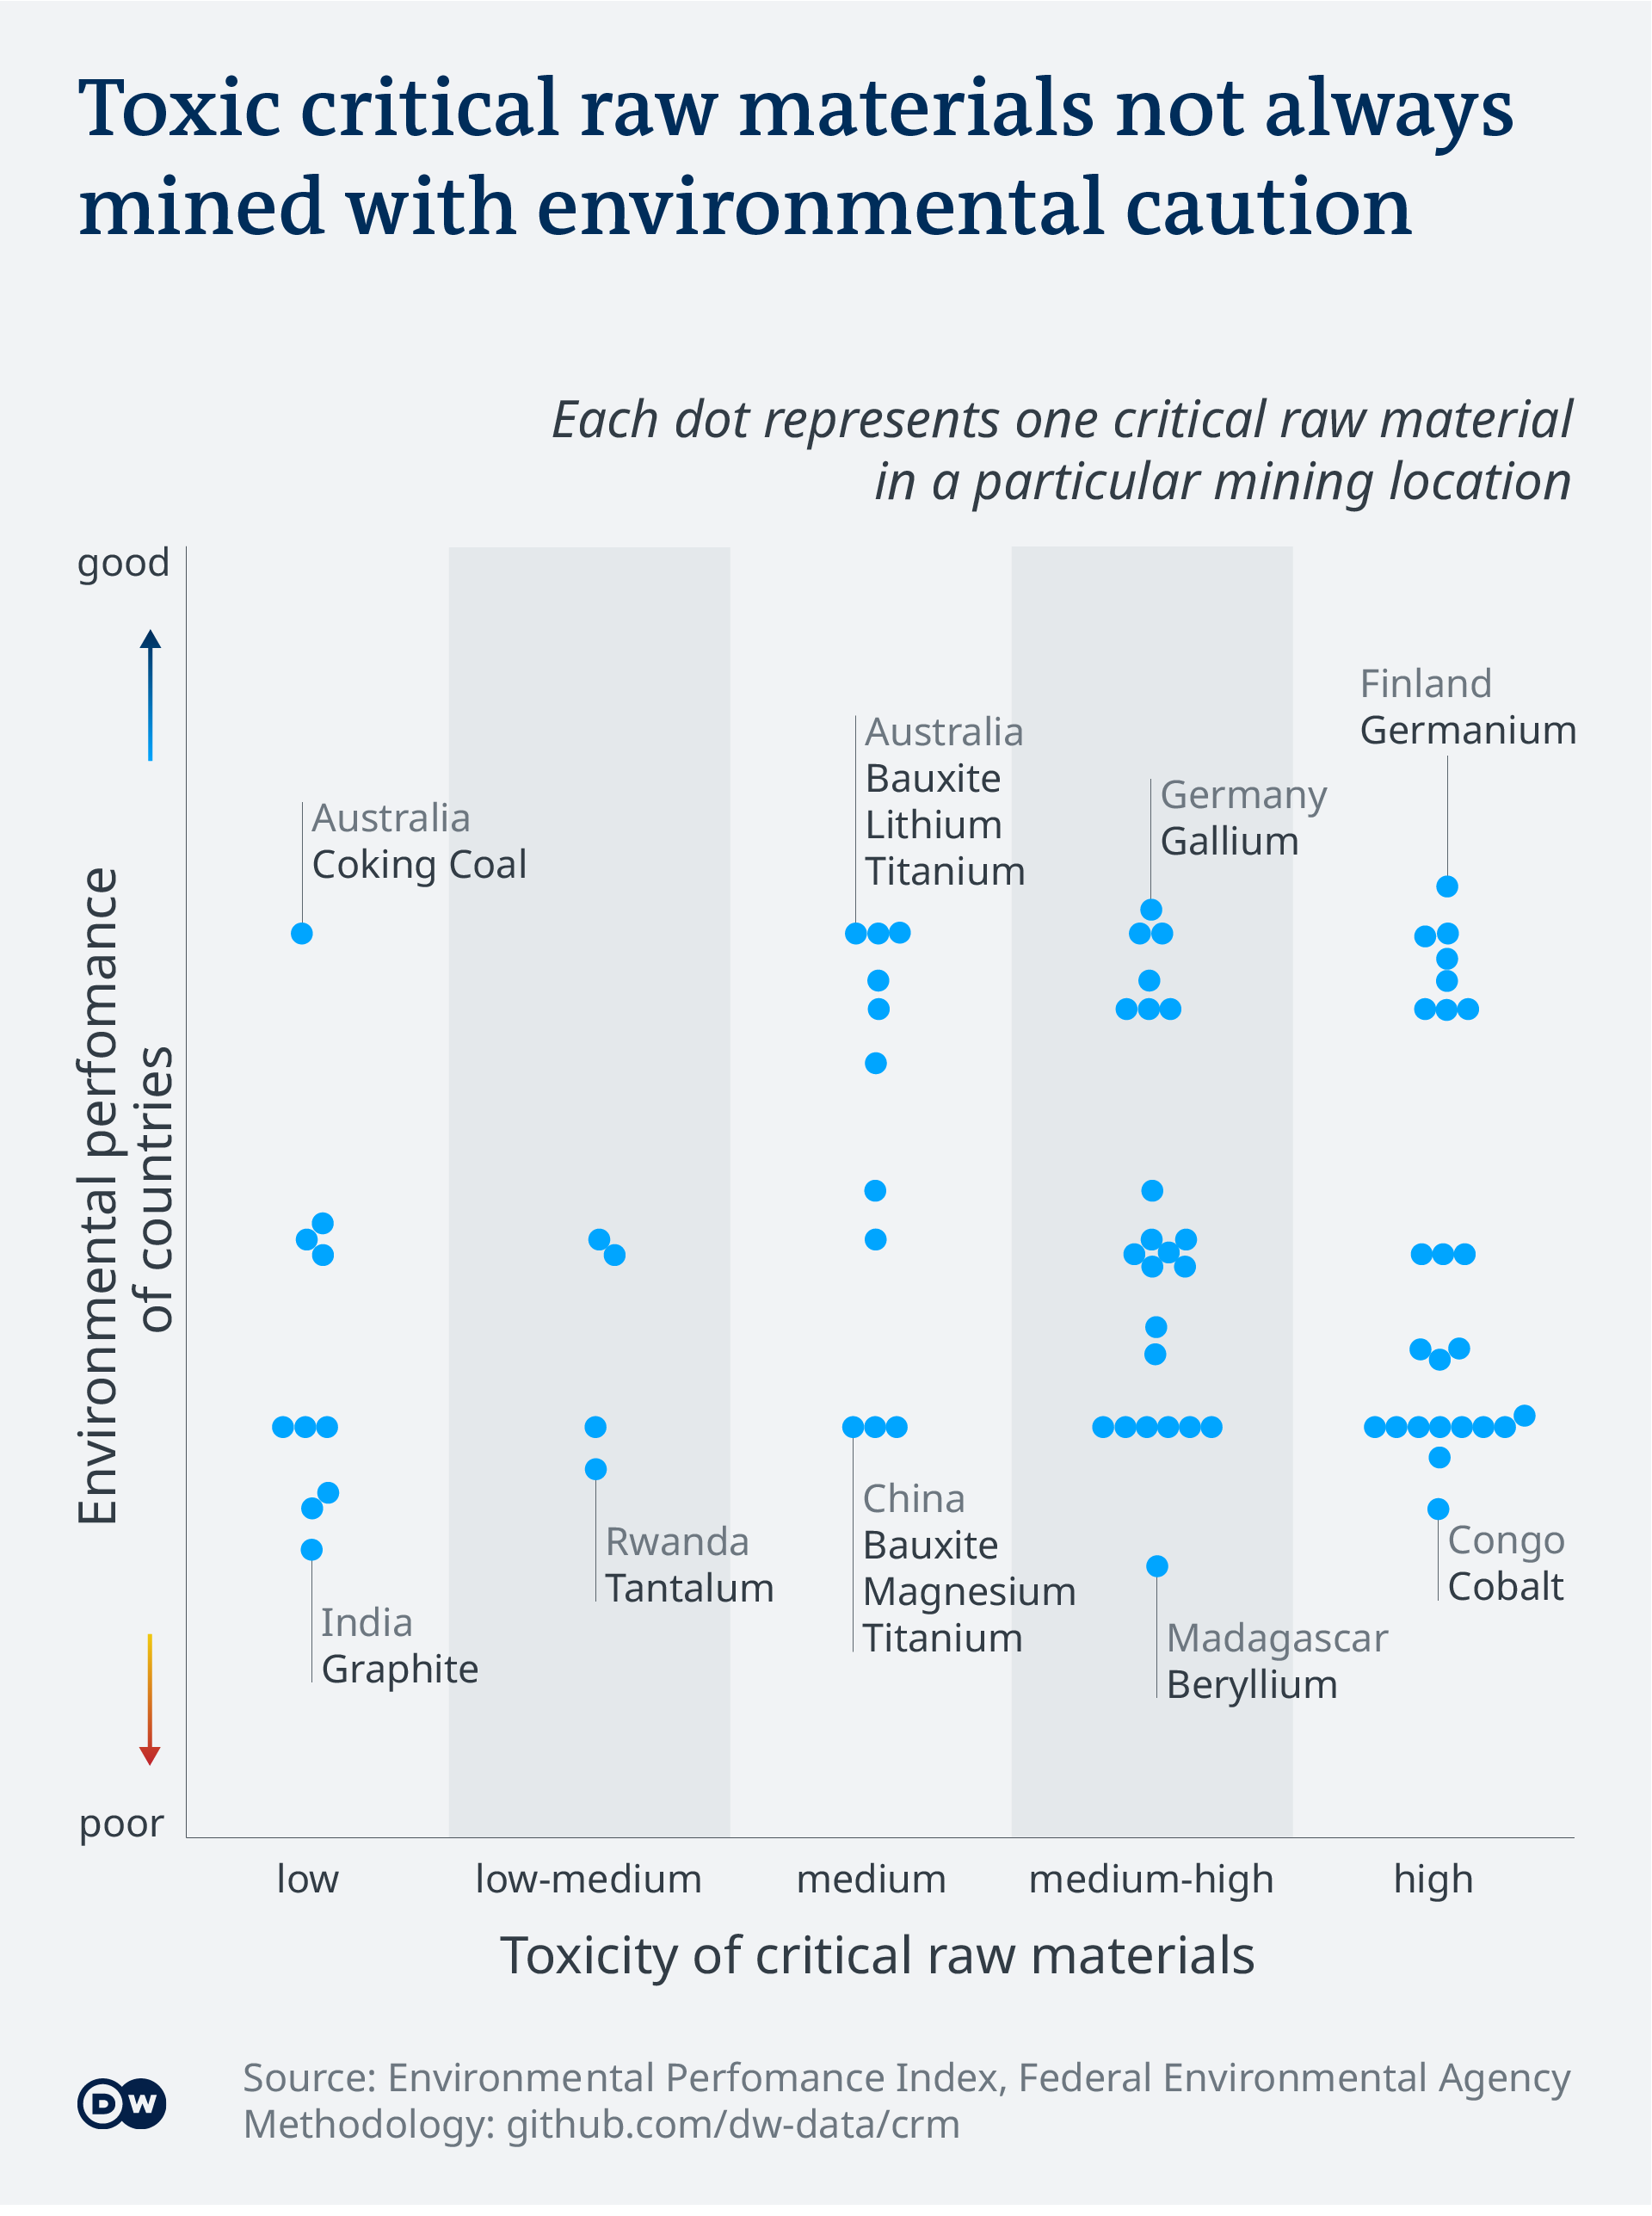 Data visualization: Toxic critical raw materials not always mined with environmental caution